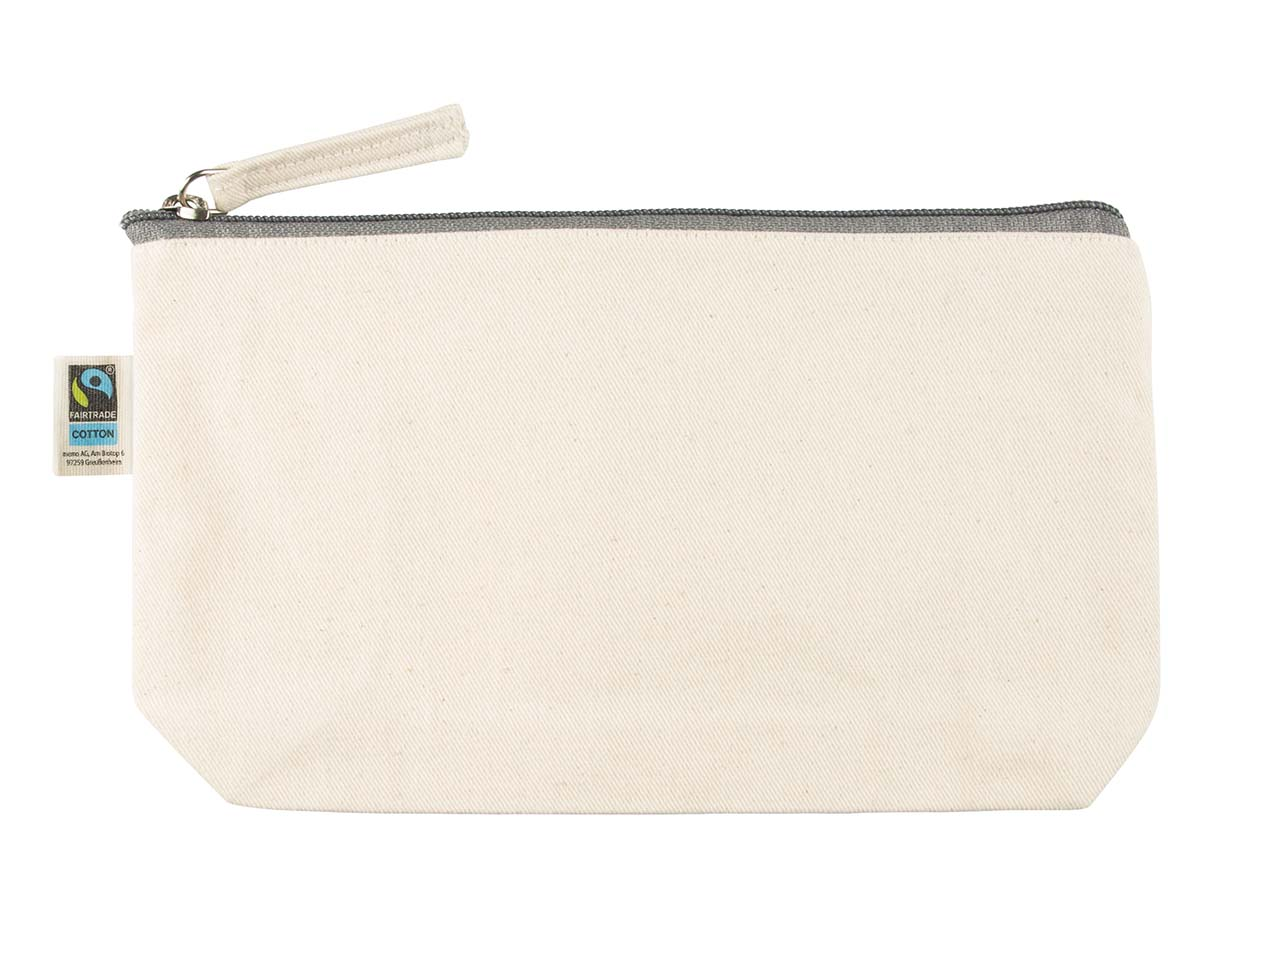 Pen and Pencil Pouch to Decorate Yourself